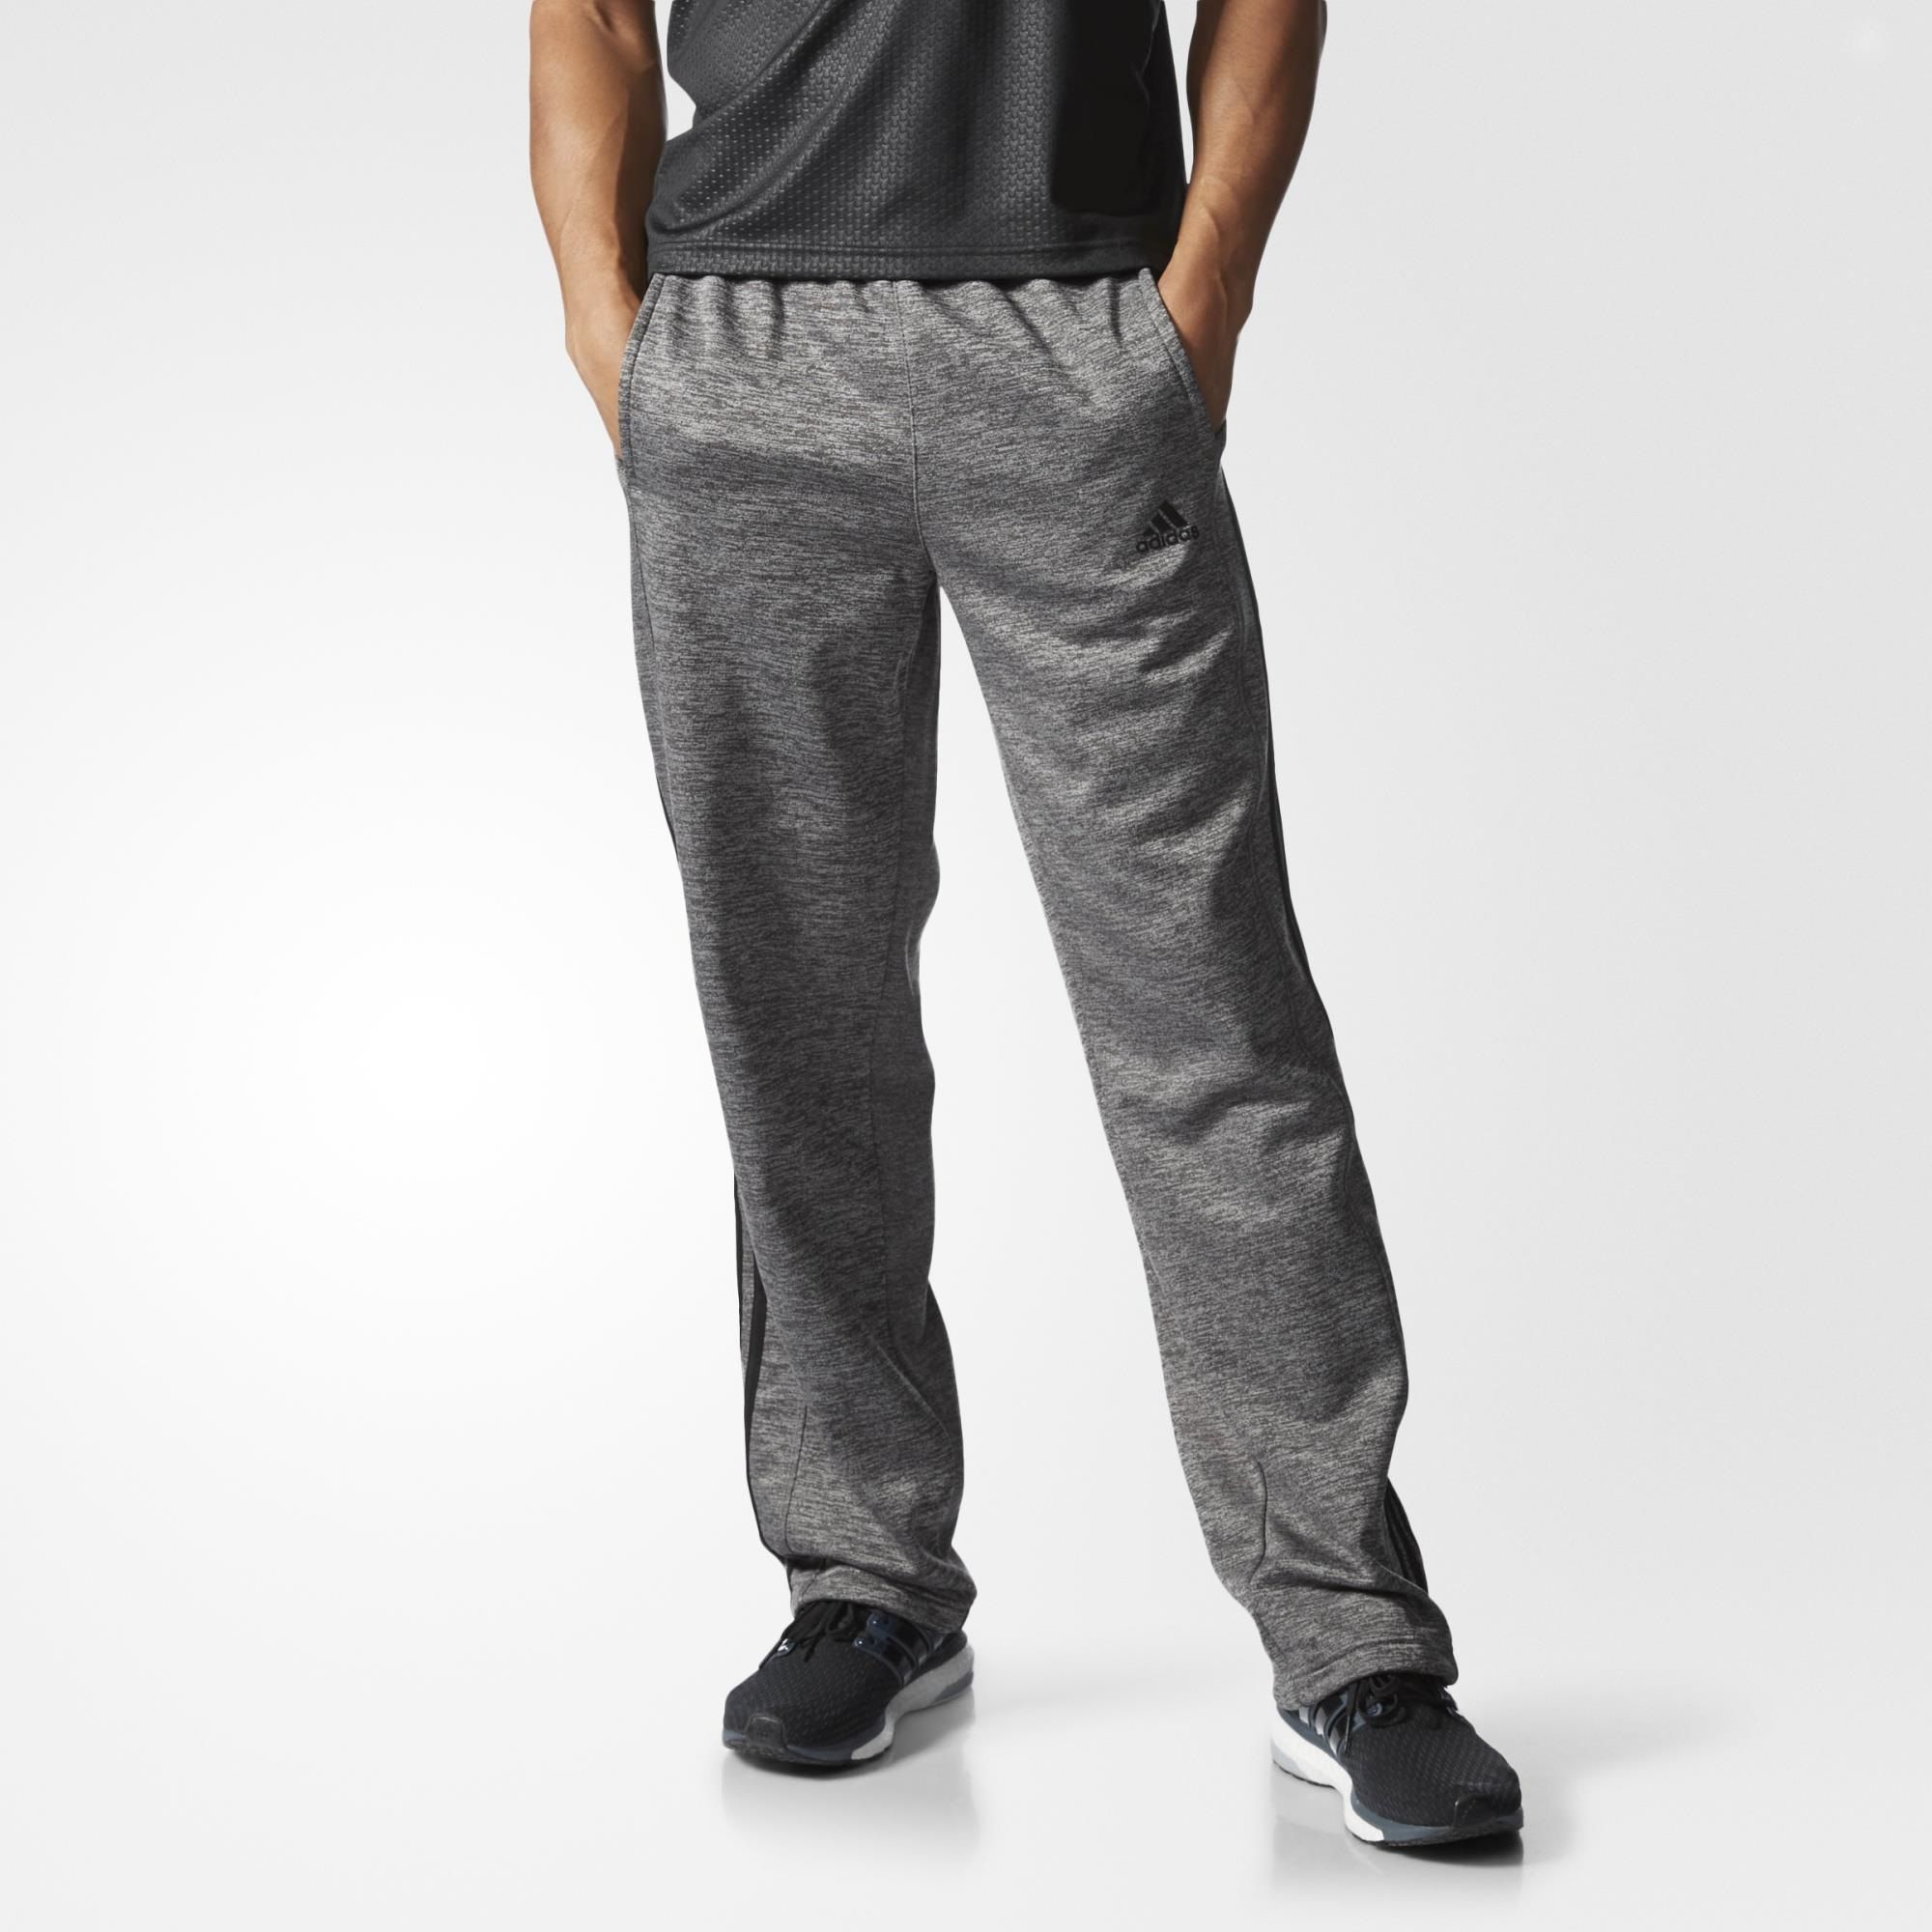 These men's pants get between you and the cold. Made with breathable climawarm™ that insulates without overheating for winter training.